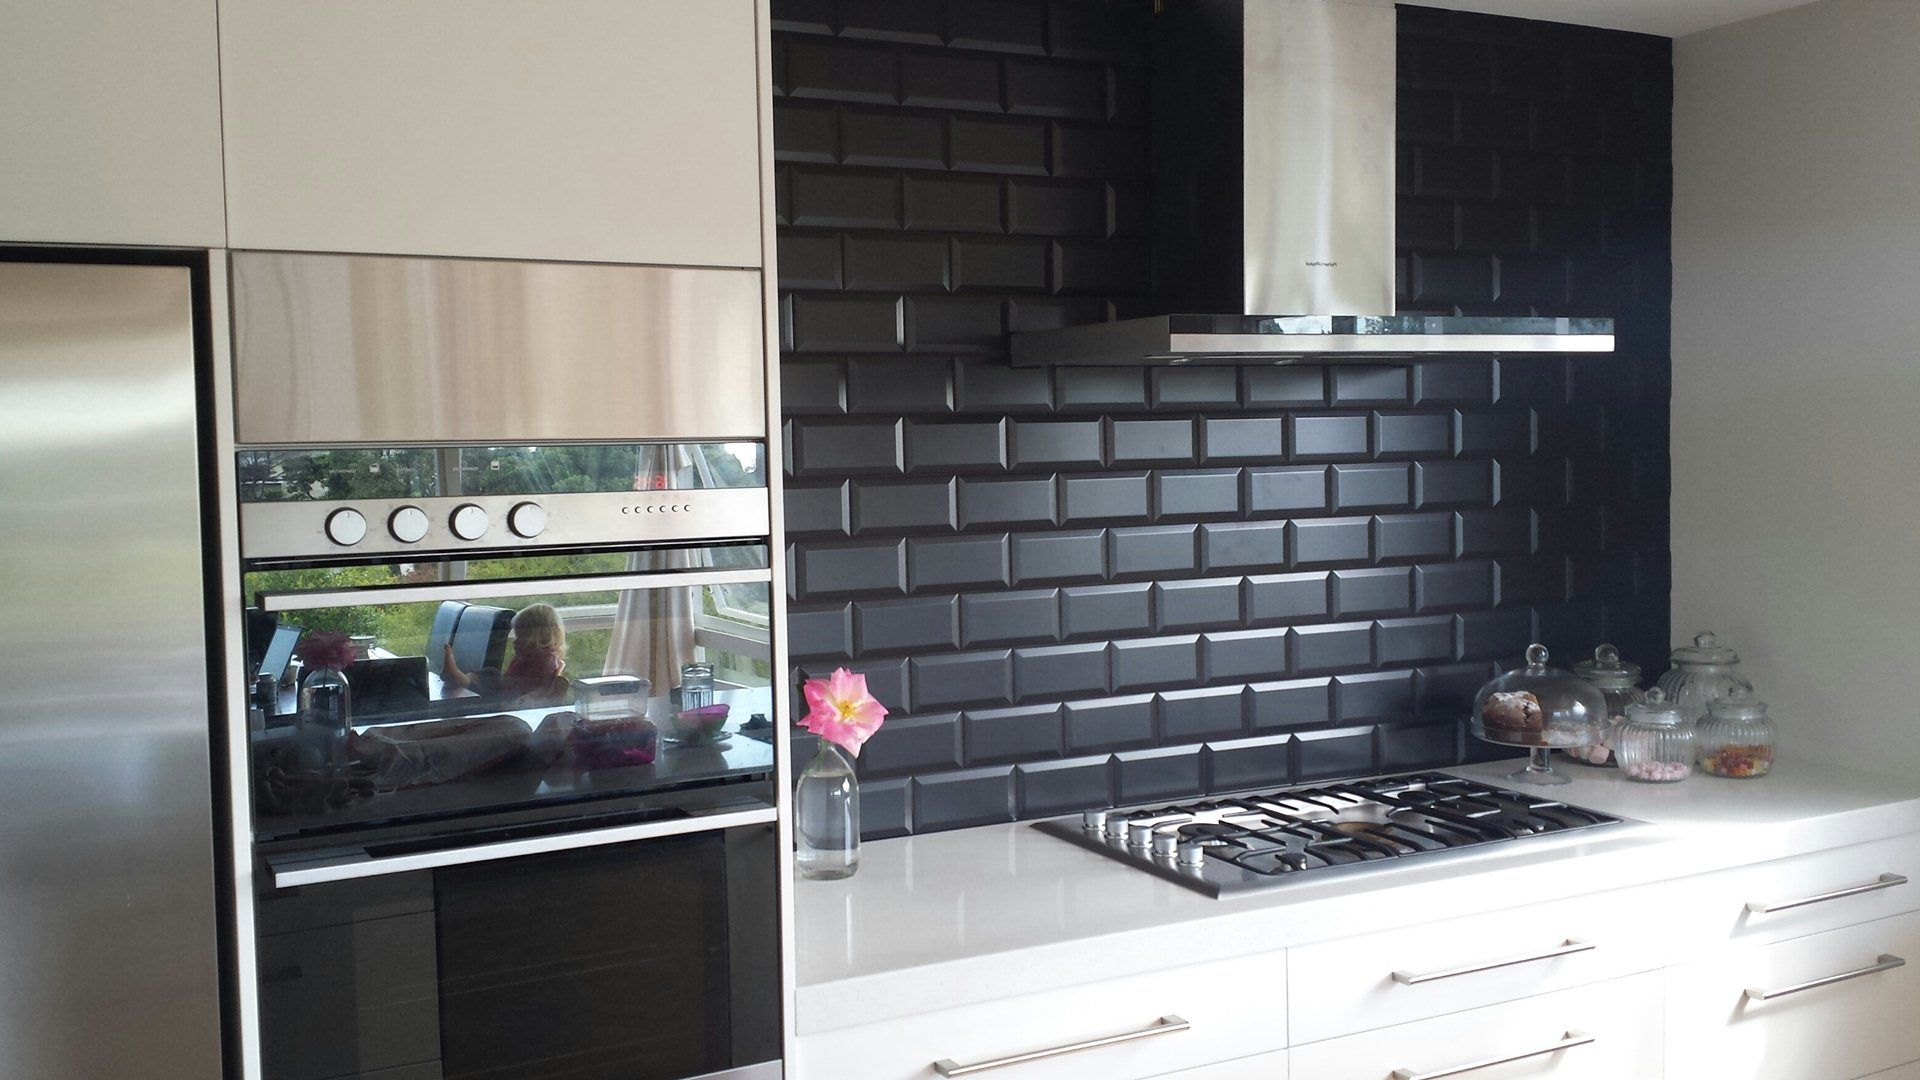 Image of: Black Subway Tile Kitchen Backsplash | Home. | Pinterest ...